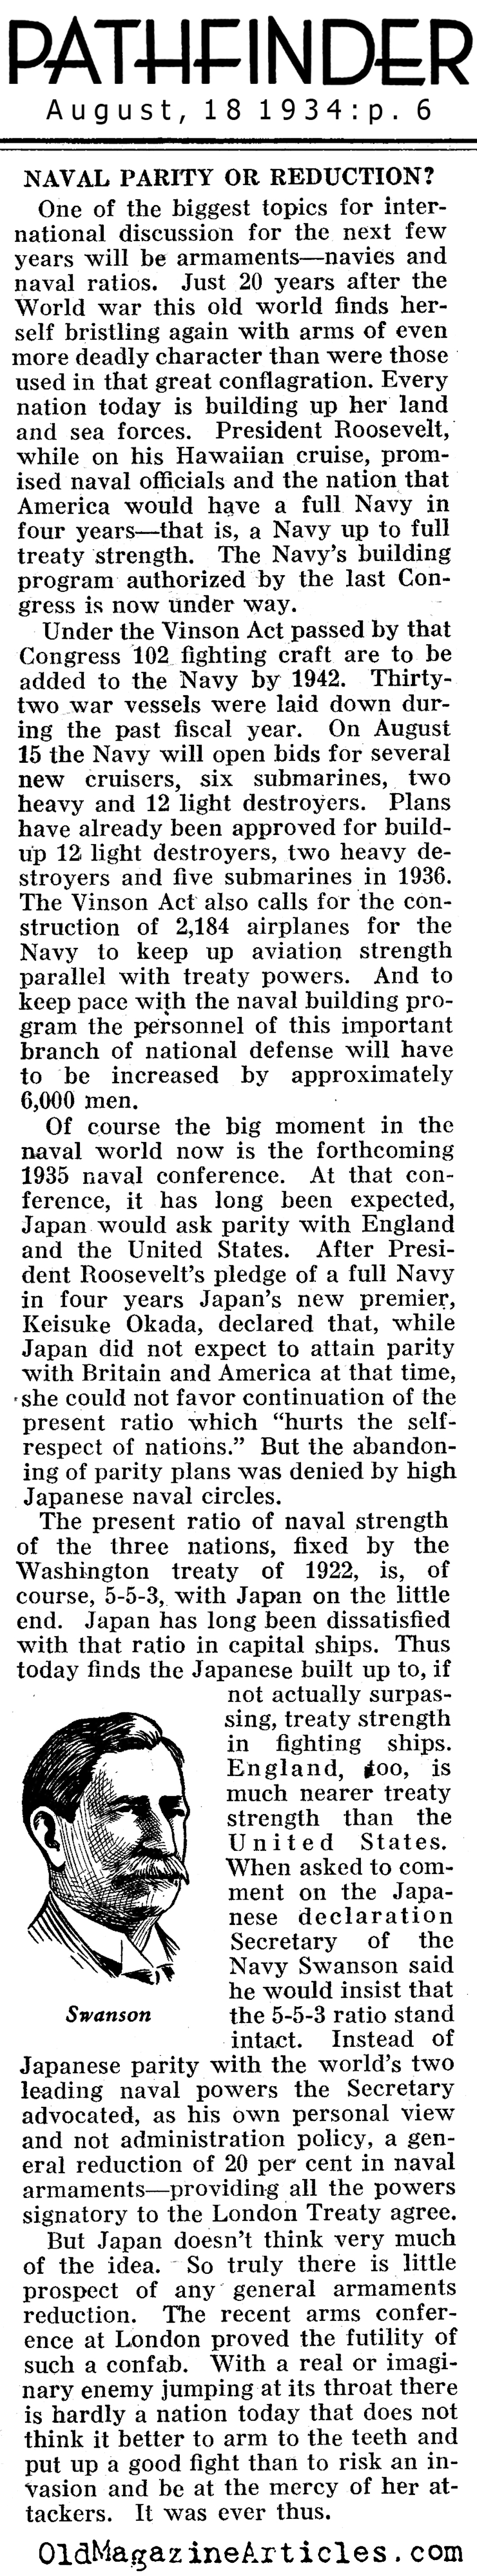 U.S. Congress Approves Naval Expansion (Pathfinder Magazine, 1934)